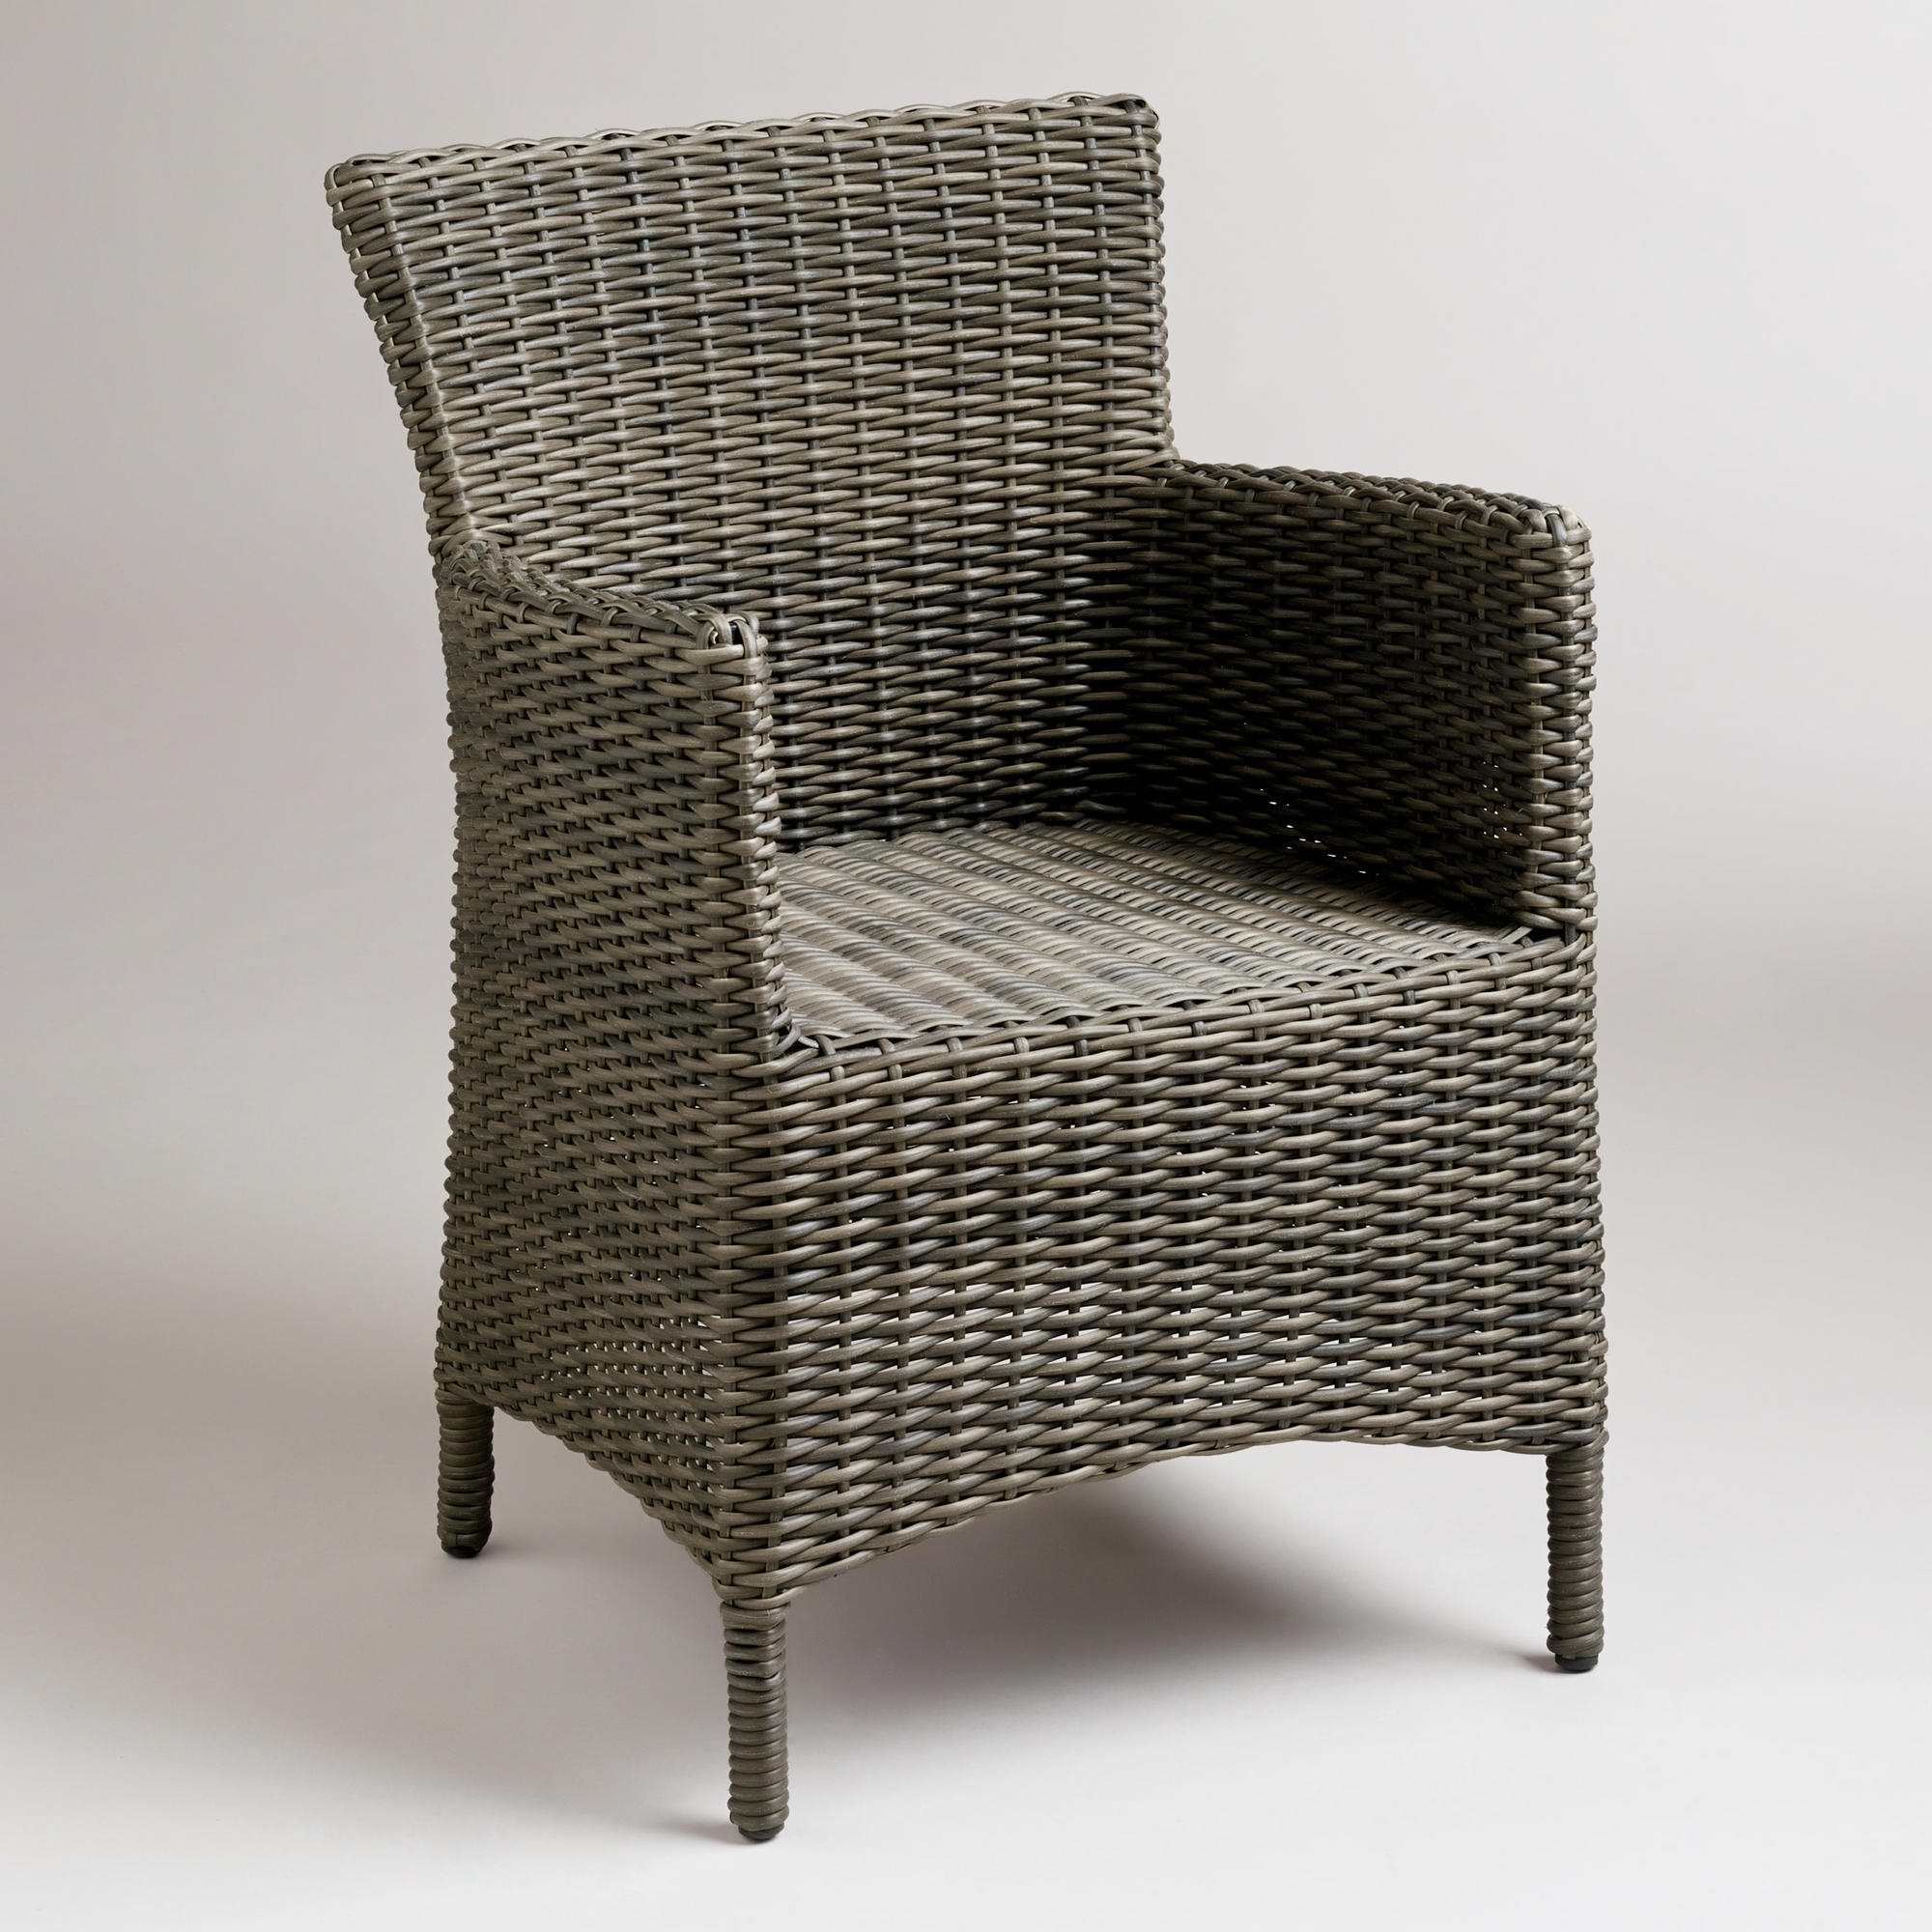 Why you should select wicker chairs – CareHomeDecor